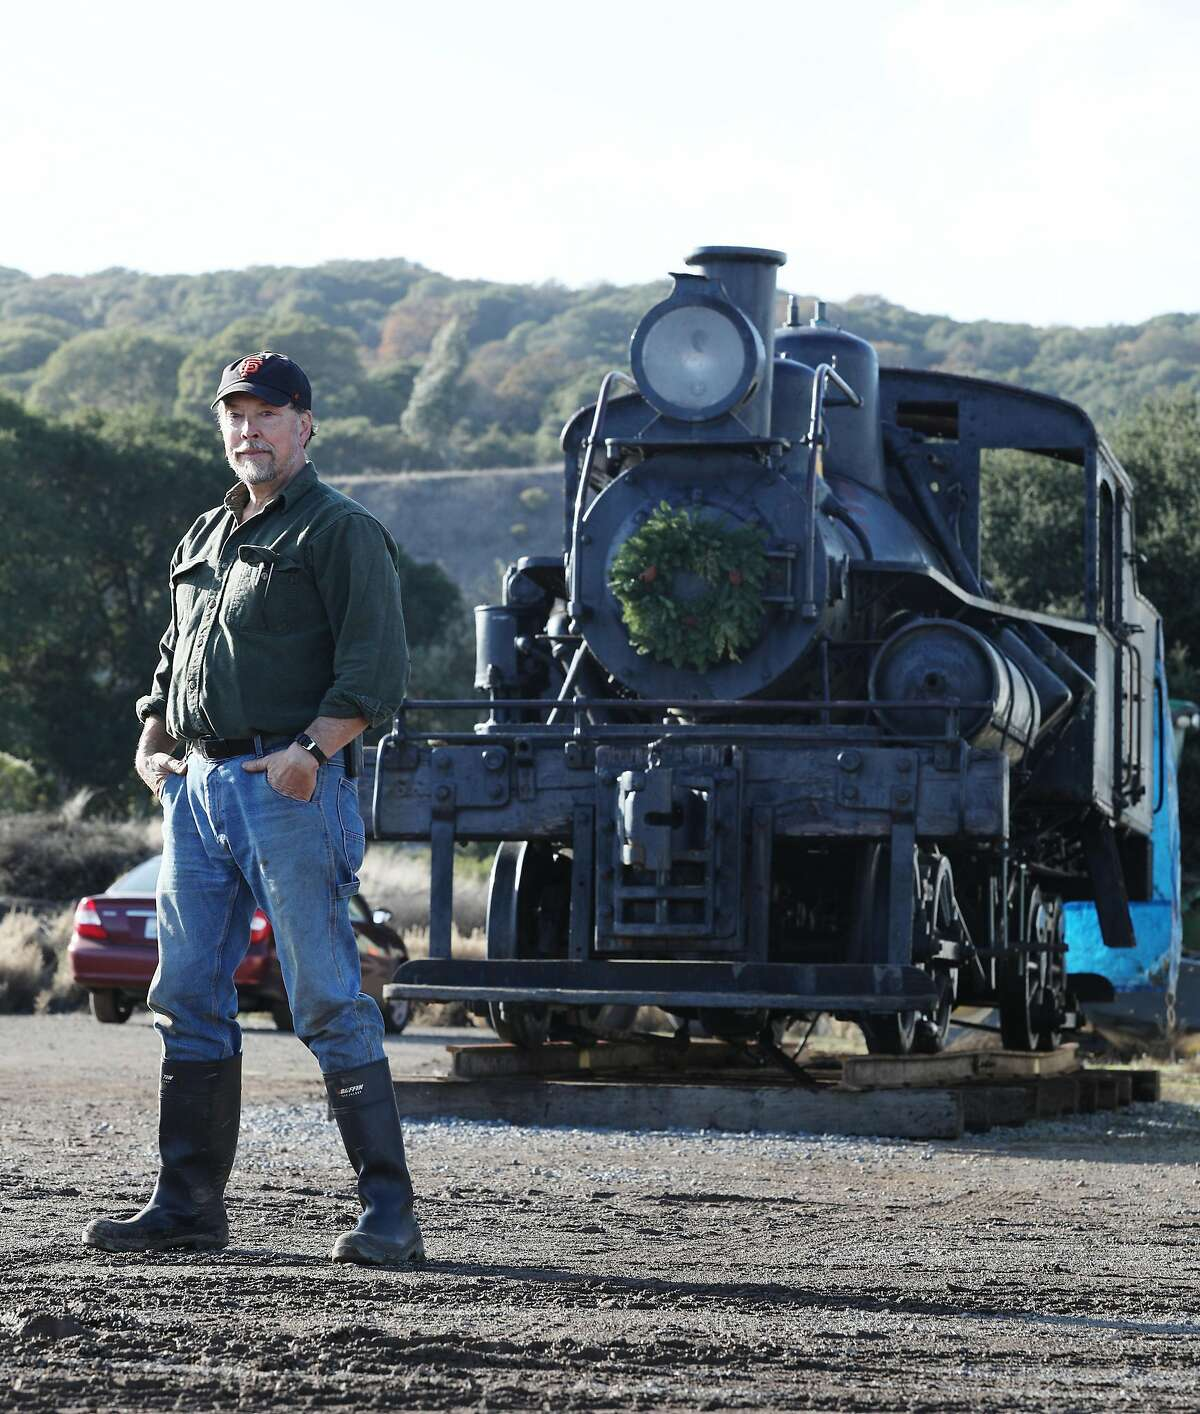 Fred Runner, manager of Friends of No. 9, stands for a portrait next to Engine No. 9, the last survivor of the Mt. Tamalpais and Muir Woods railway, on Wednesday, November 28, 2018 in Sonoma County.